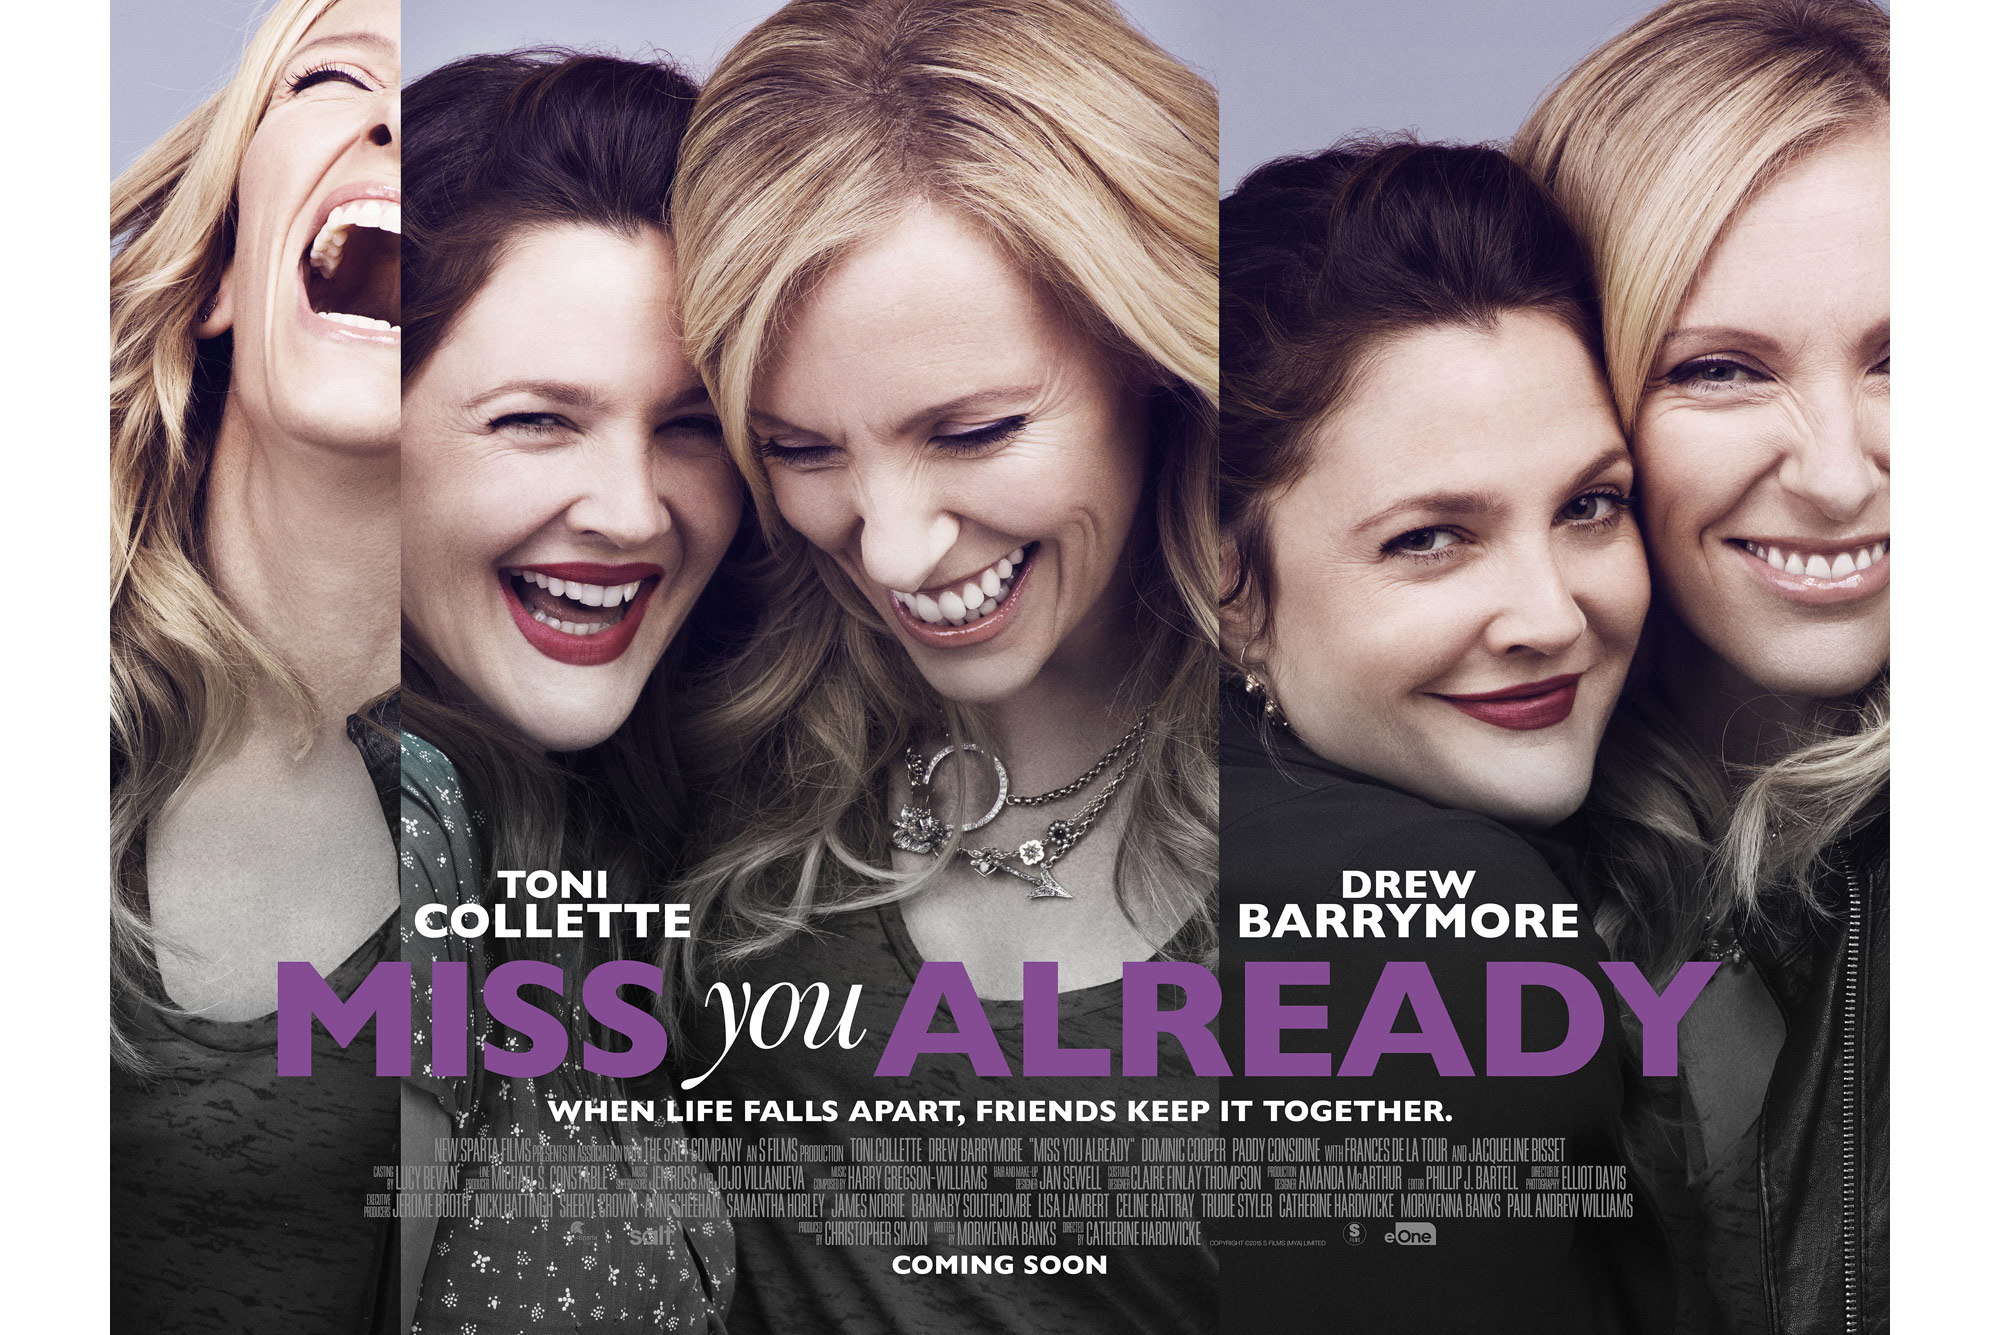 Drew Barrymore & Toni Collette | Miss You Already